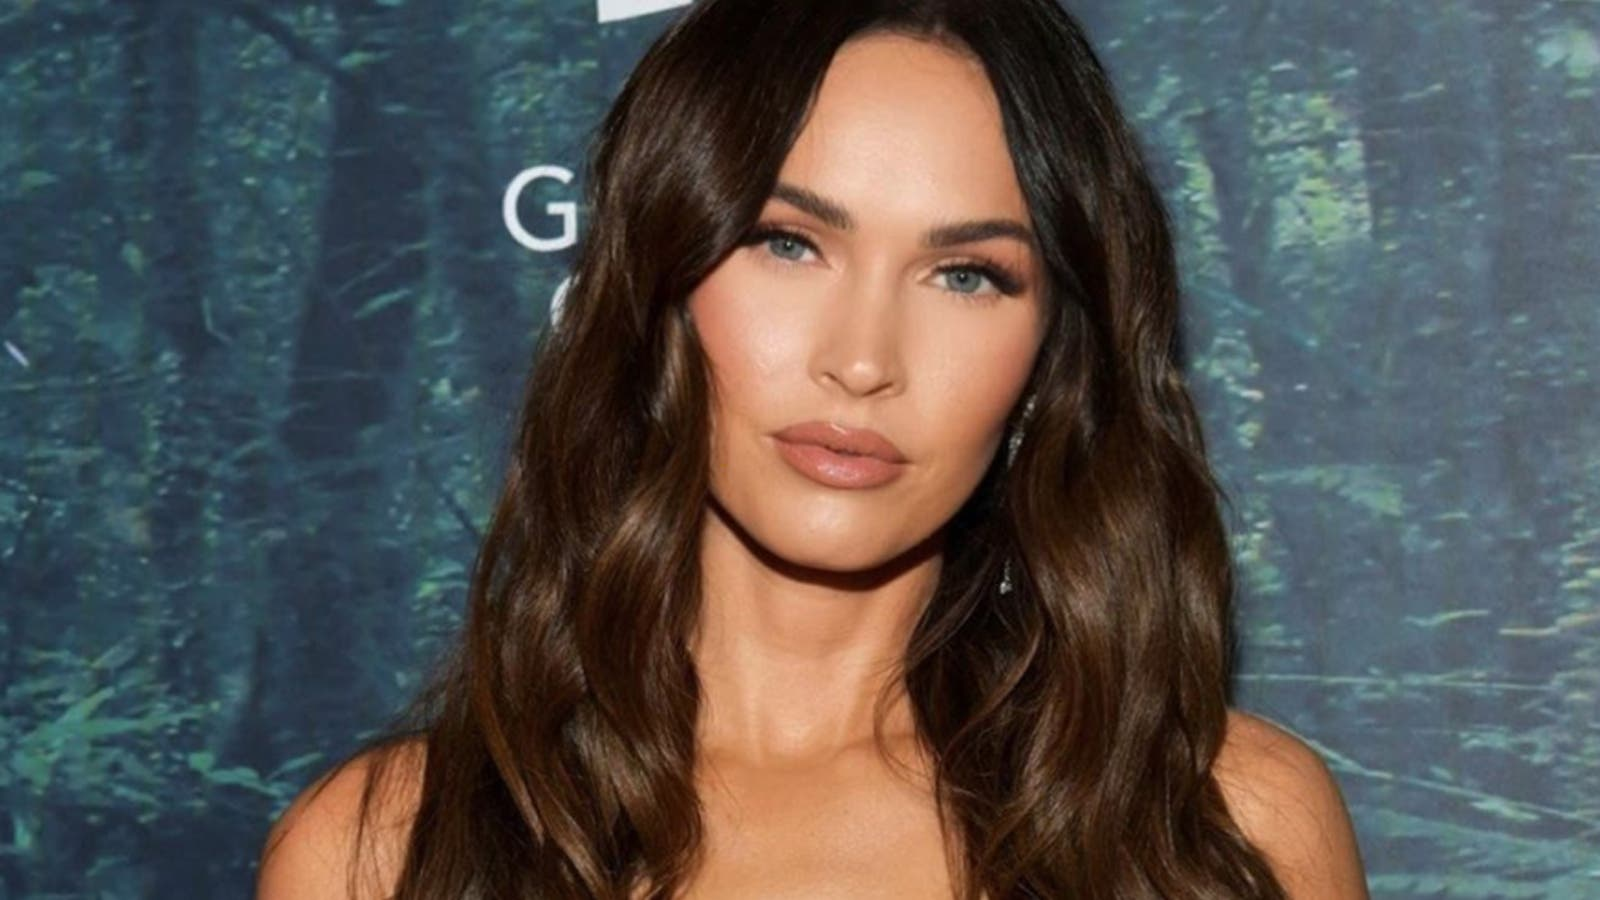 Megan fox porno hd Megan Fox Opens Up About Being Sexualized And Mistreated As A Young Actress Al Bawaba